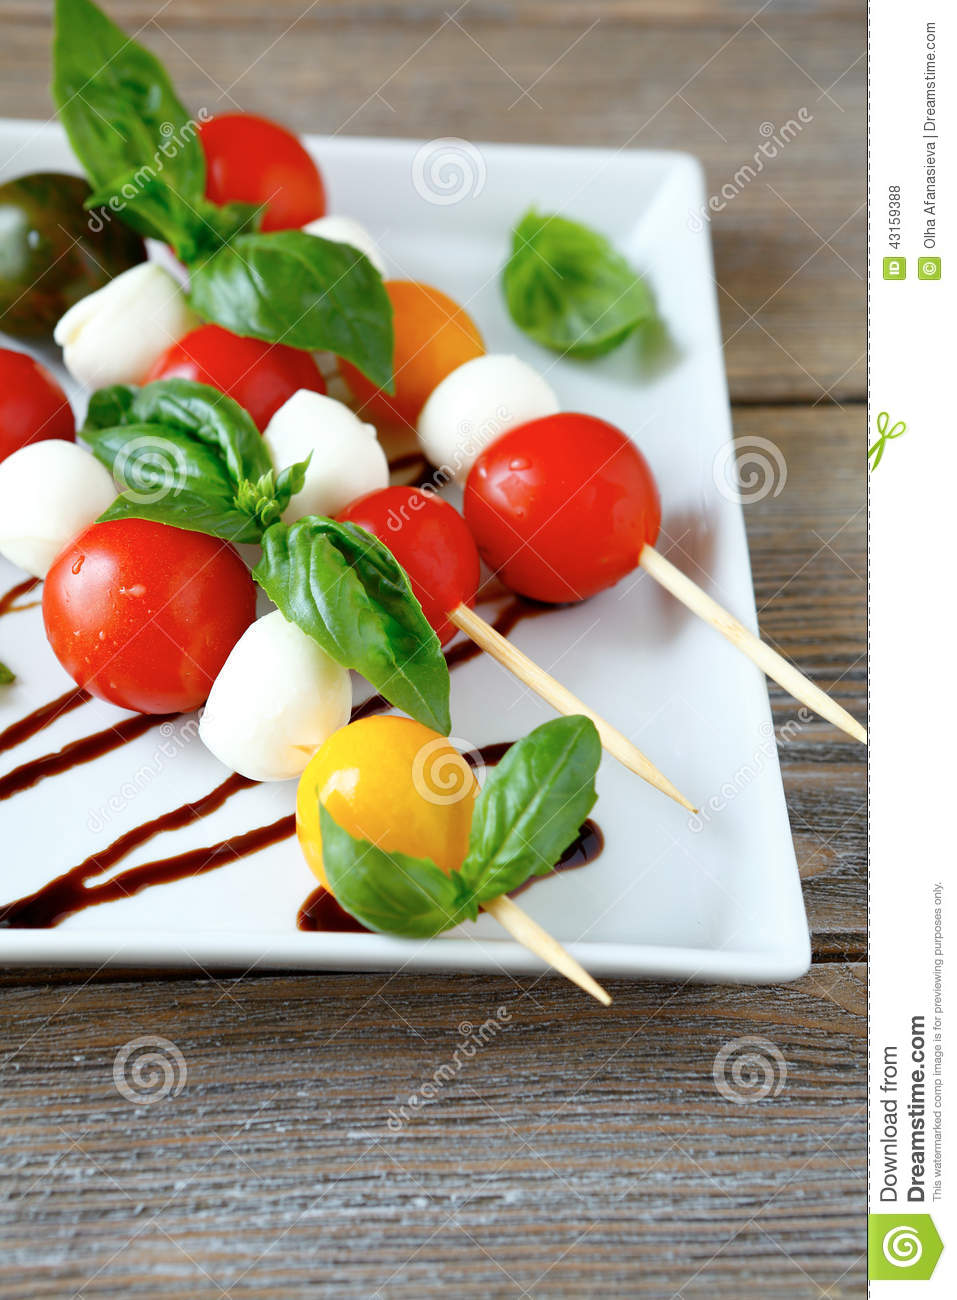 Caprese salad on wooden sticks